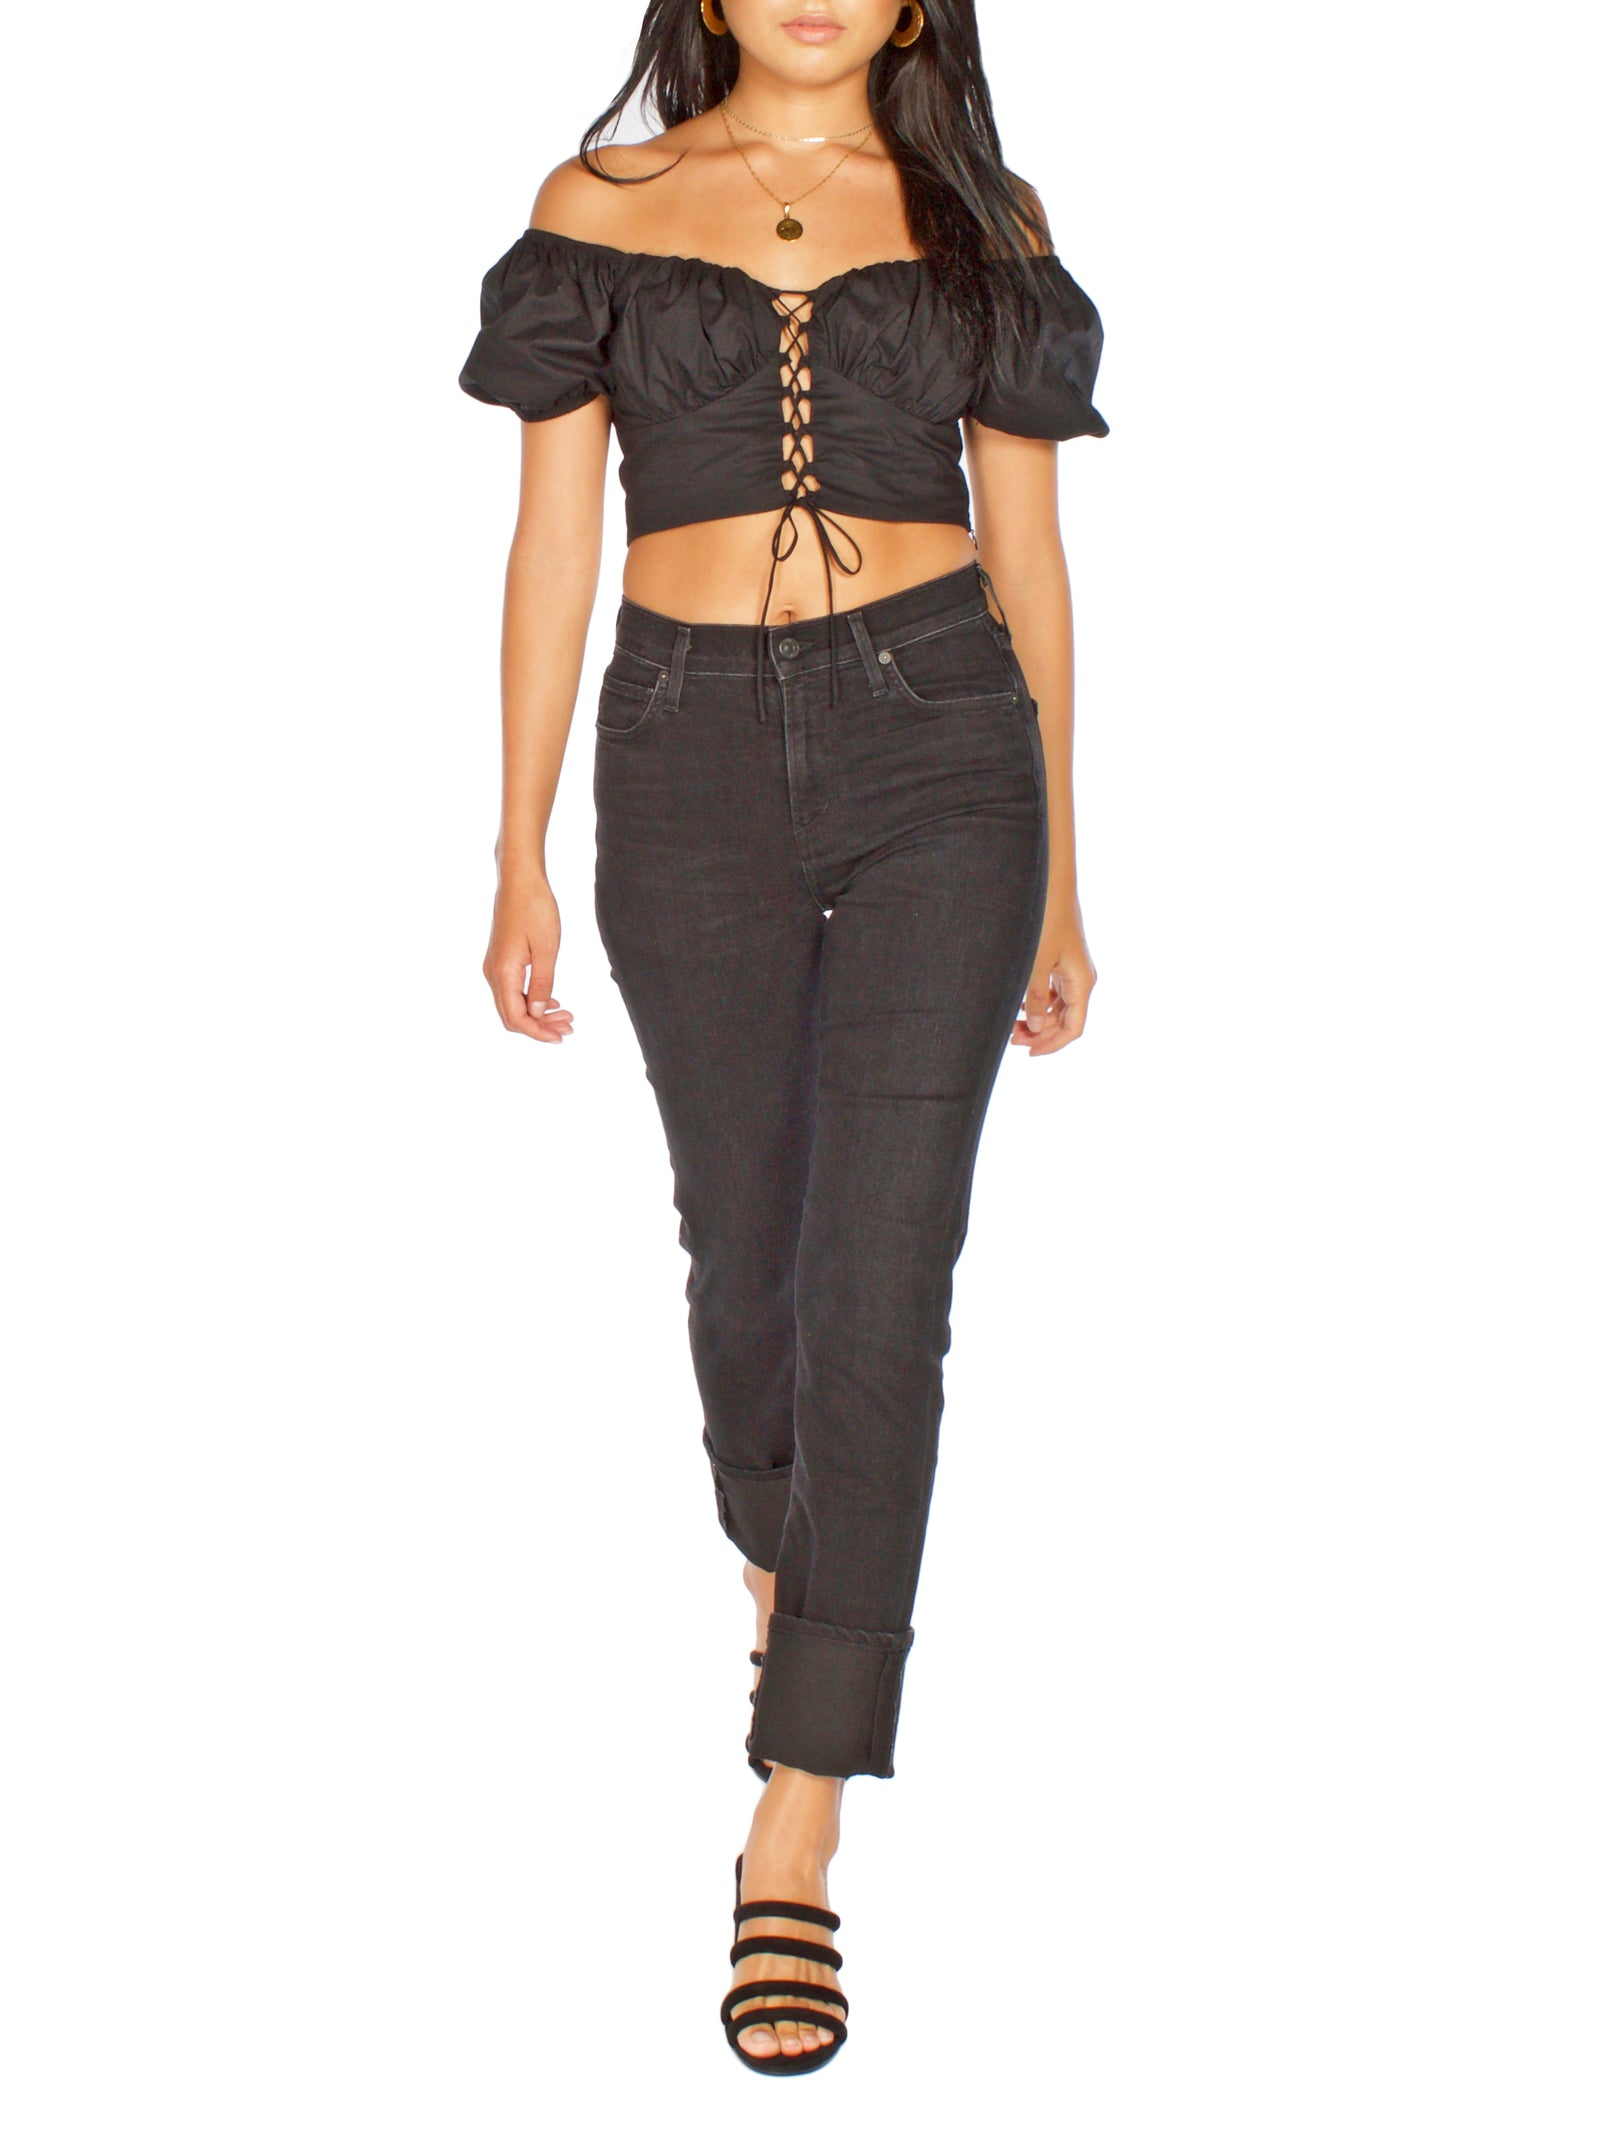 BONNY Crop Top - PRADEGAL